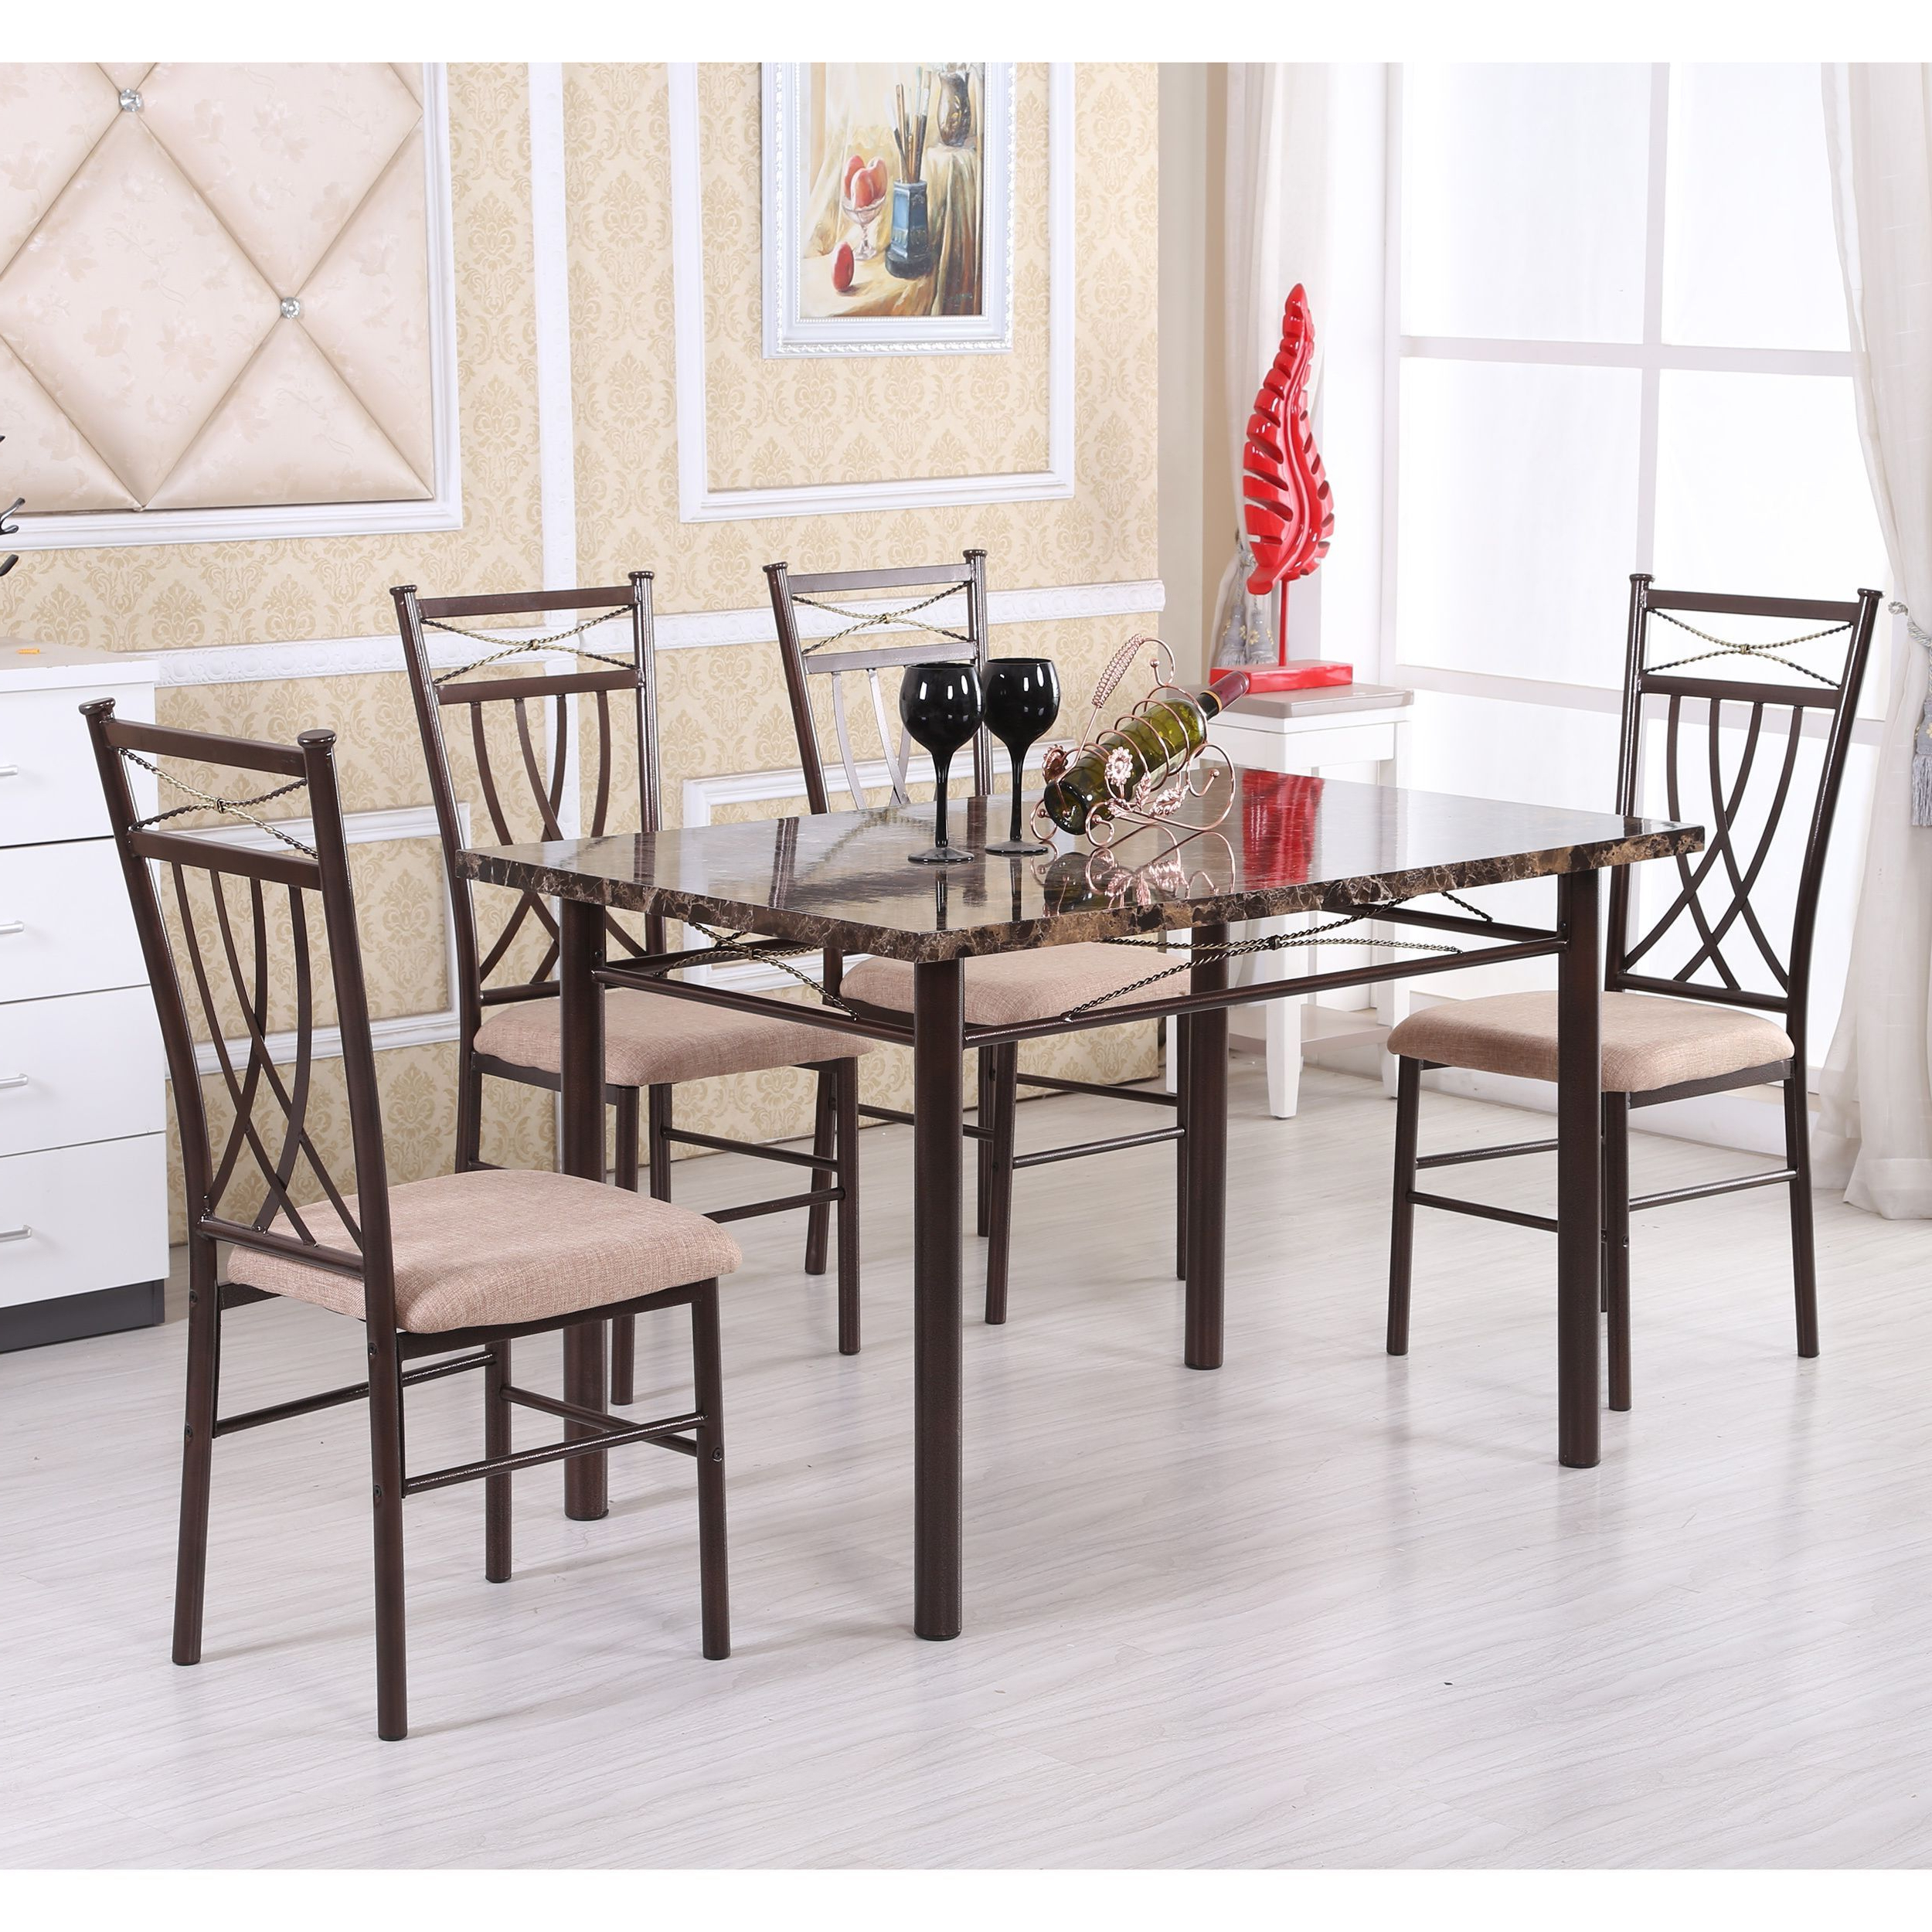 2020 Update Your Dining Room With This Classic Five Piece Dining Set Intended For Kieffer 5 Piece Dining Sets (View 1 of 25)